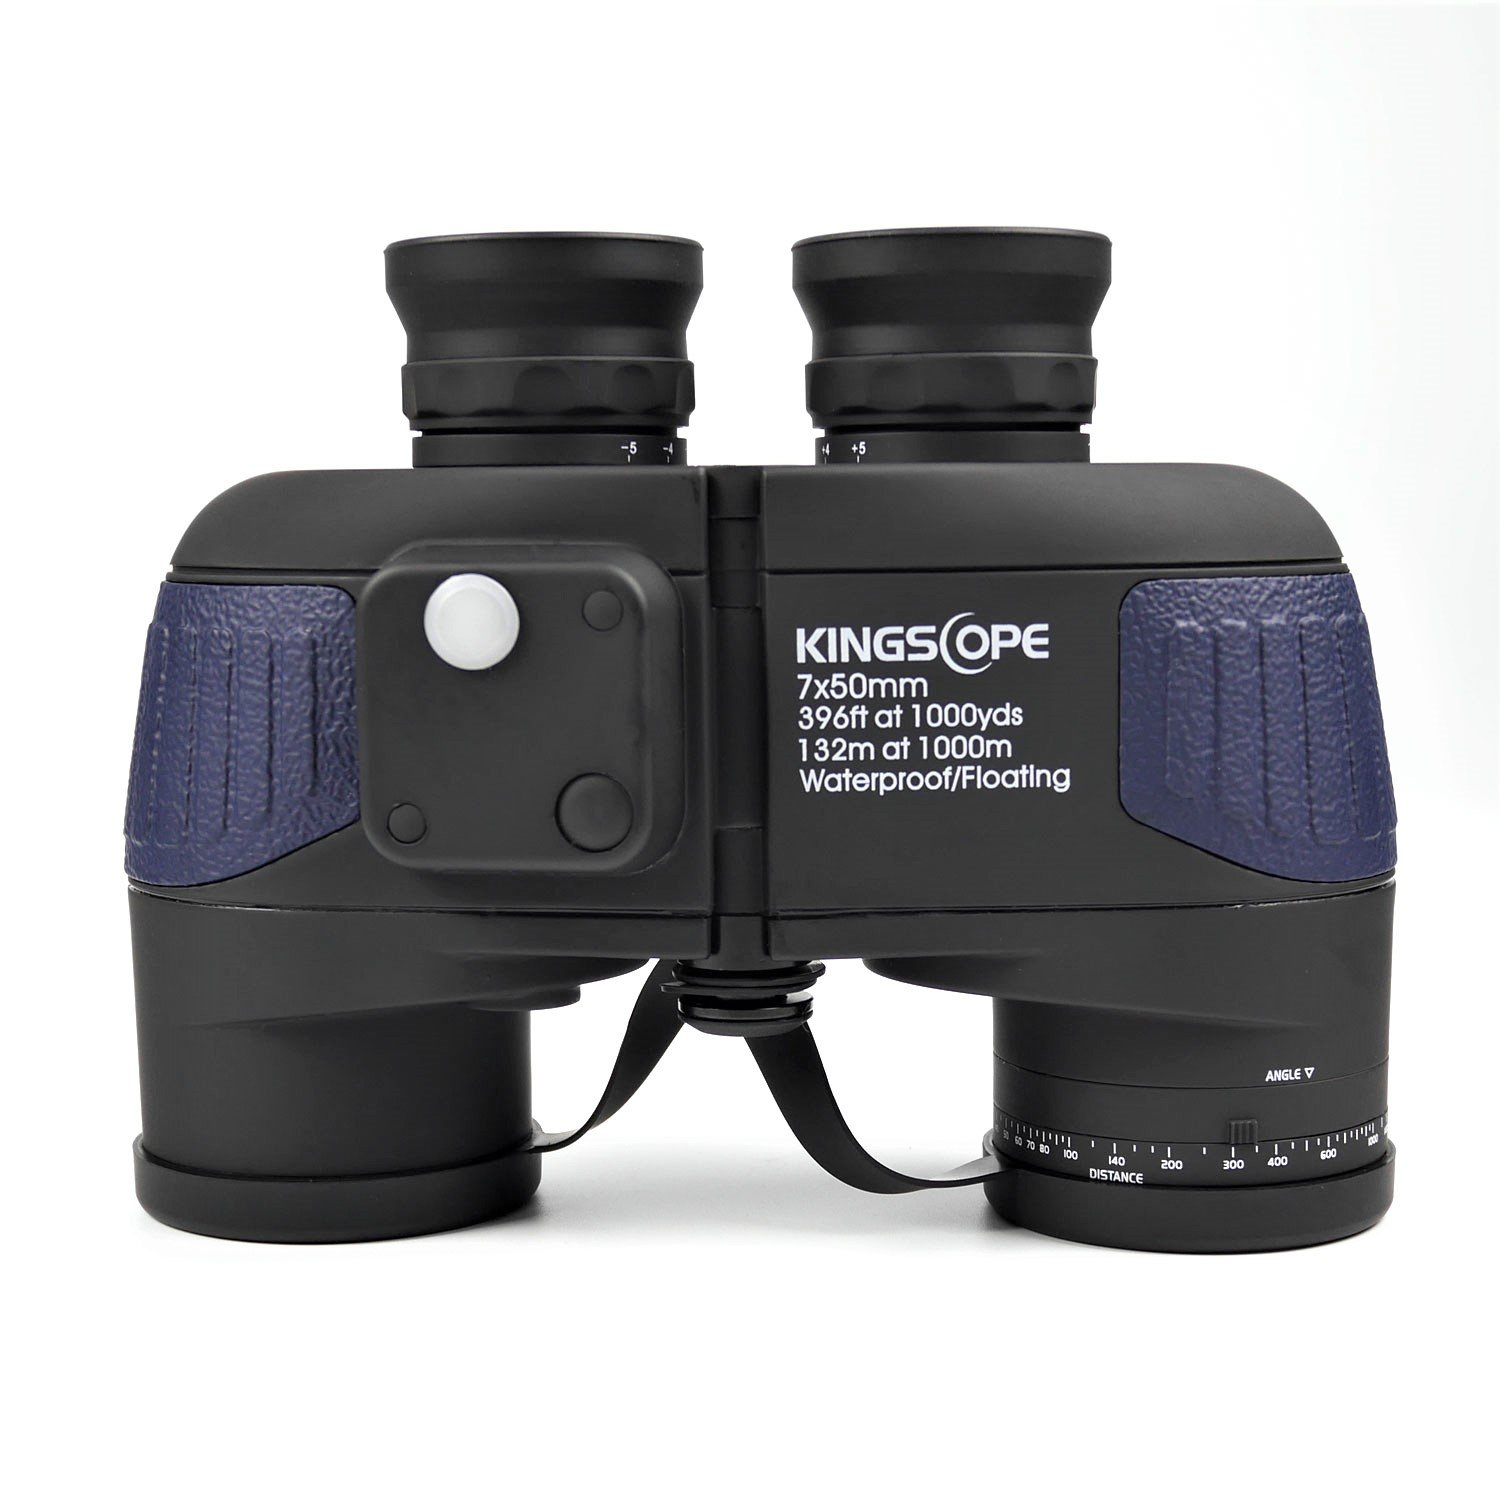 Kingscope 7X50 HD Military Marine Binoculars with Illuminated Reticle Rangefinder Compass, BAK4 Porro Prism – Floating Waterproof Fogproof for Navigation, Boating, Fishing, Water Sports, Hunting